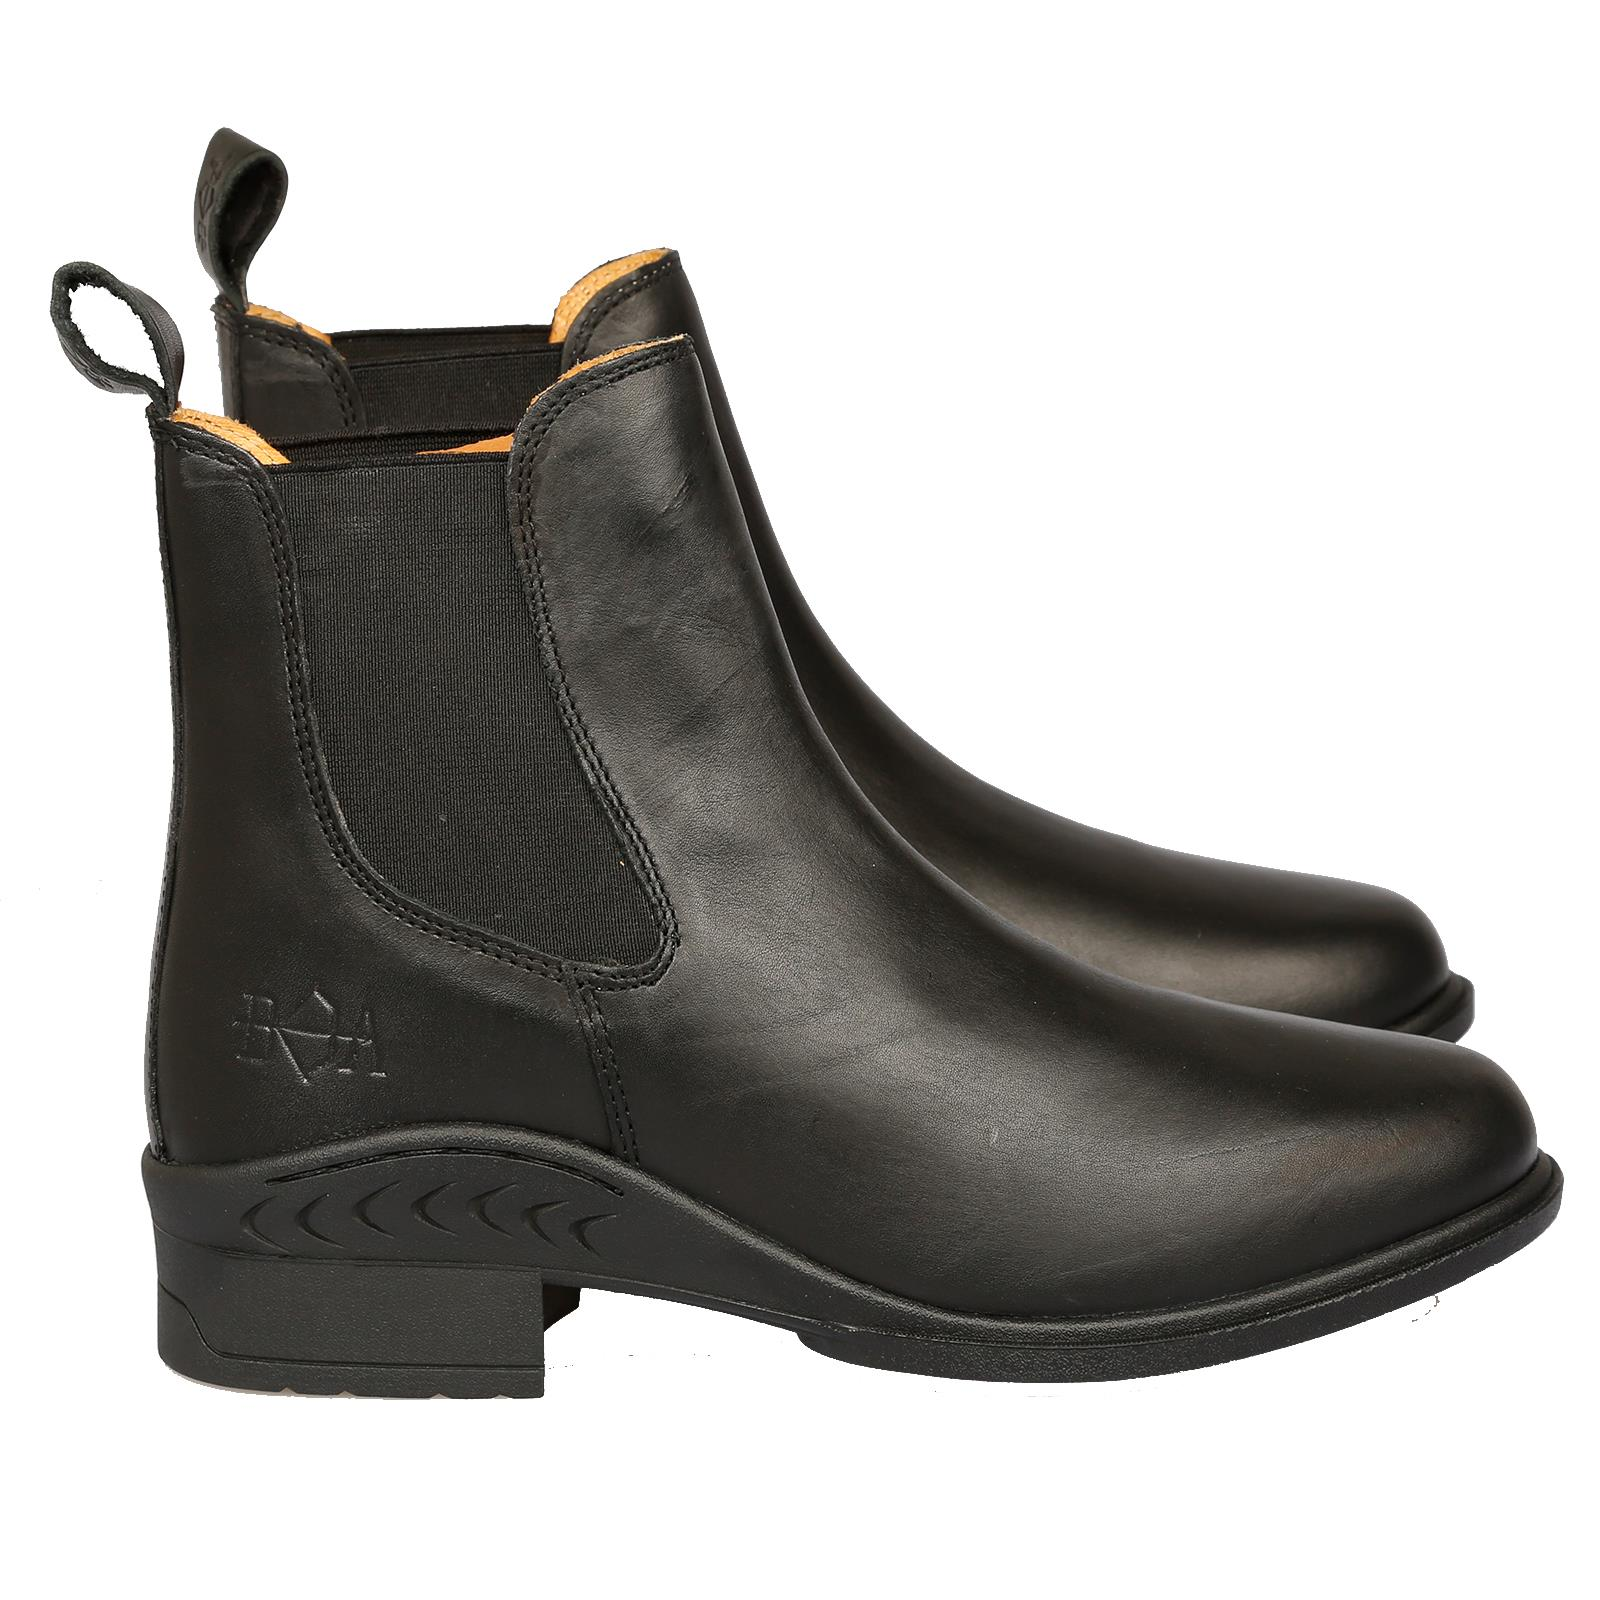 B&A Equestrian Isabella Horse Riding Leather Ladies Pull On Womens Jodhpur Boots